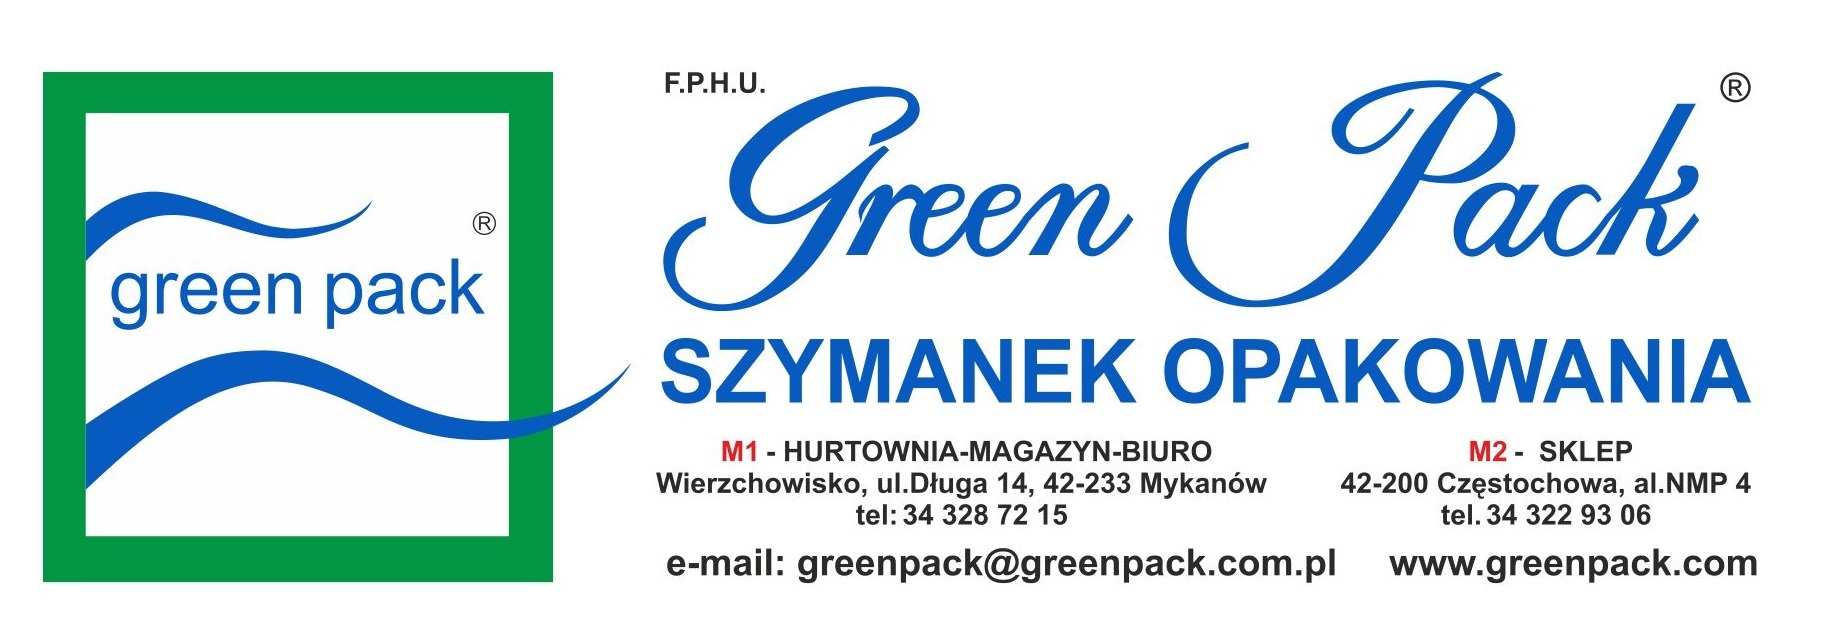 green_pack_logo.jpg